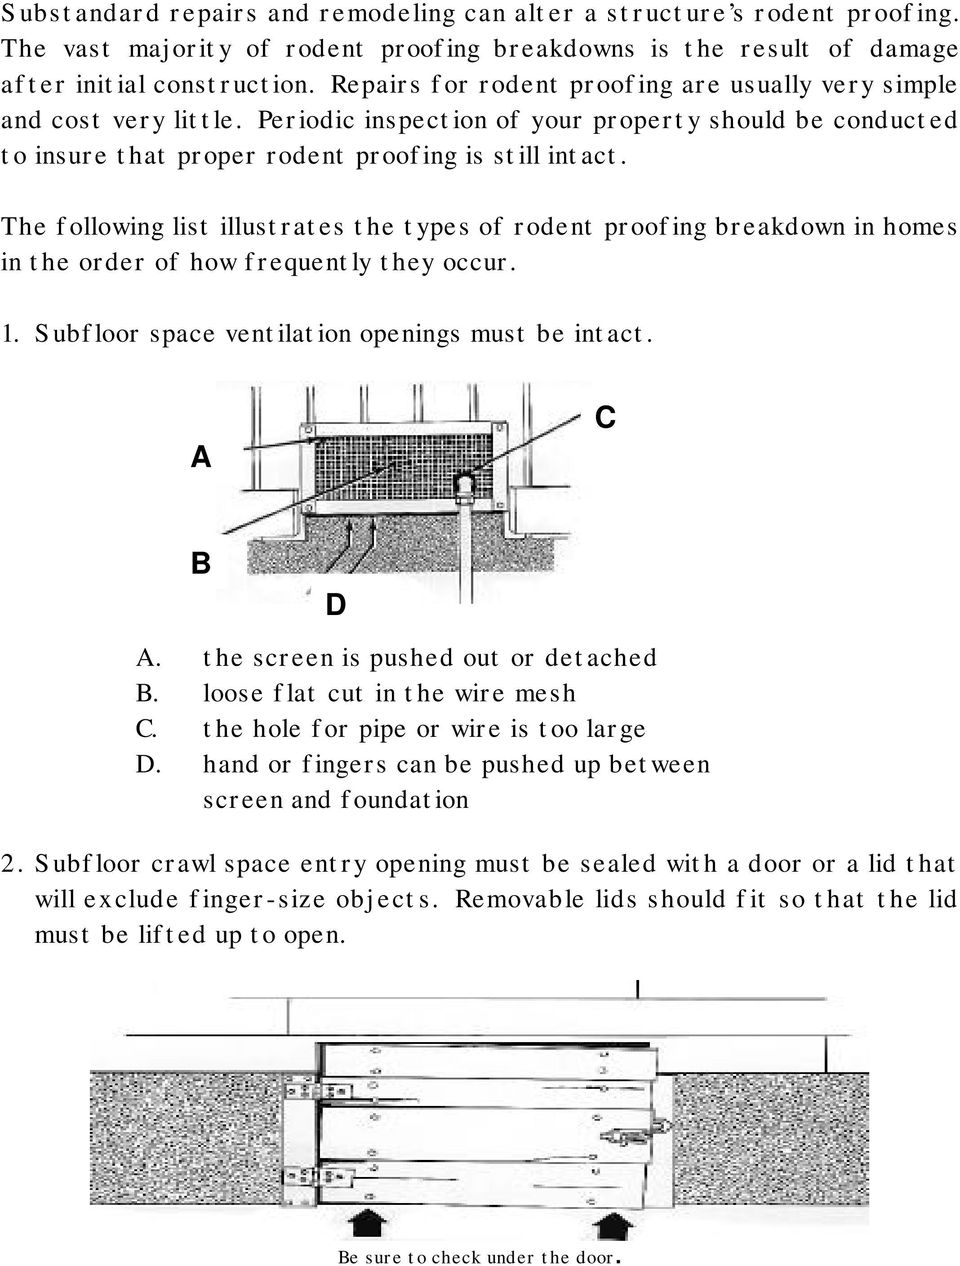 The following list illustrates the types of rodent proofing breakdown in homes in the order of how frequently they occur. 1. Subfloor space ventilation openings must be intact. A C B D A.